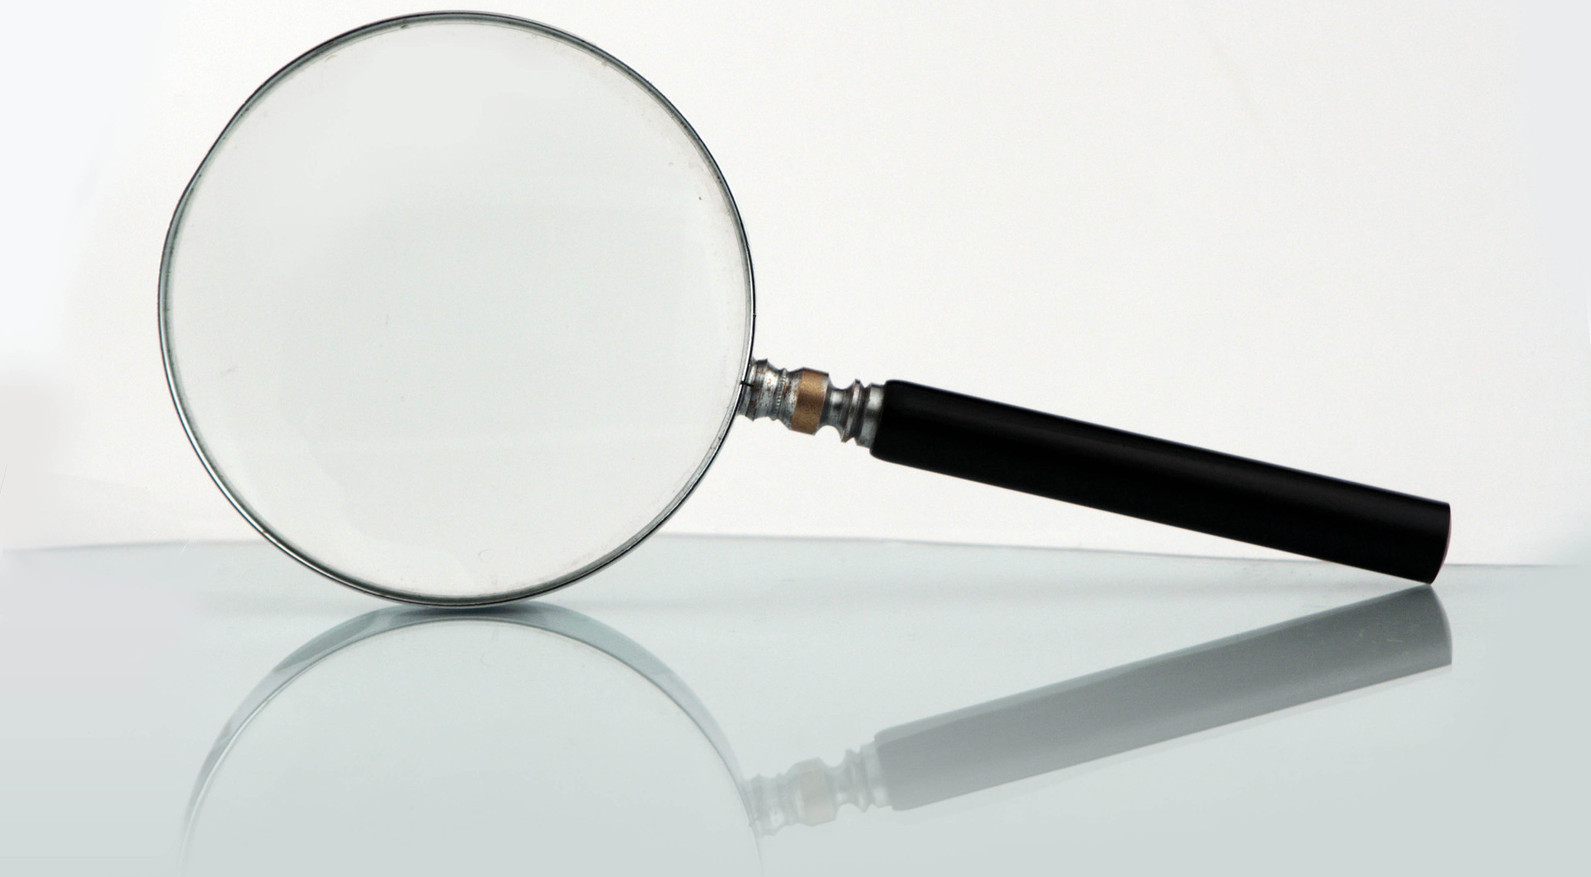 magnifying glass loupe-1237390-1599x1066 freeimages Szorstki crop